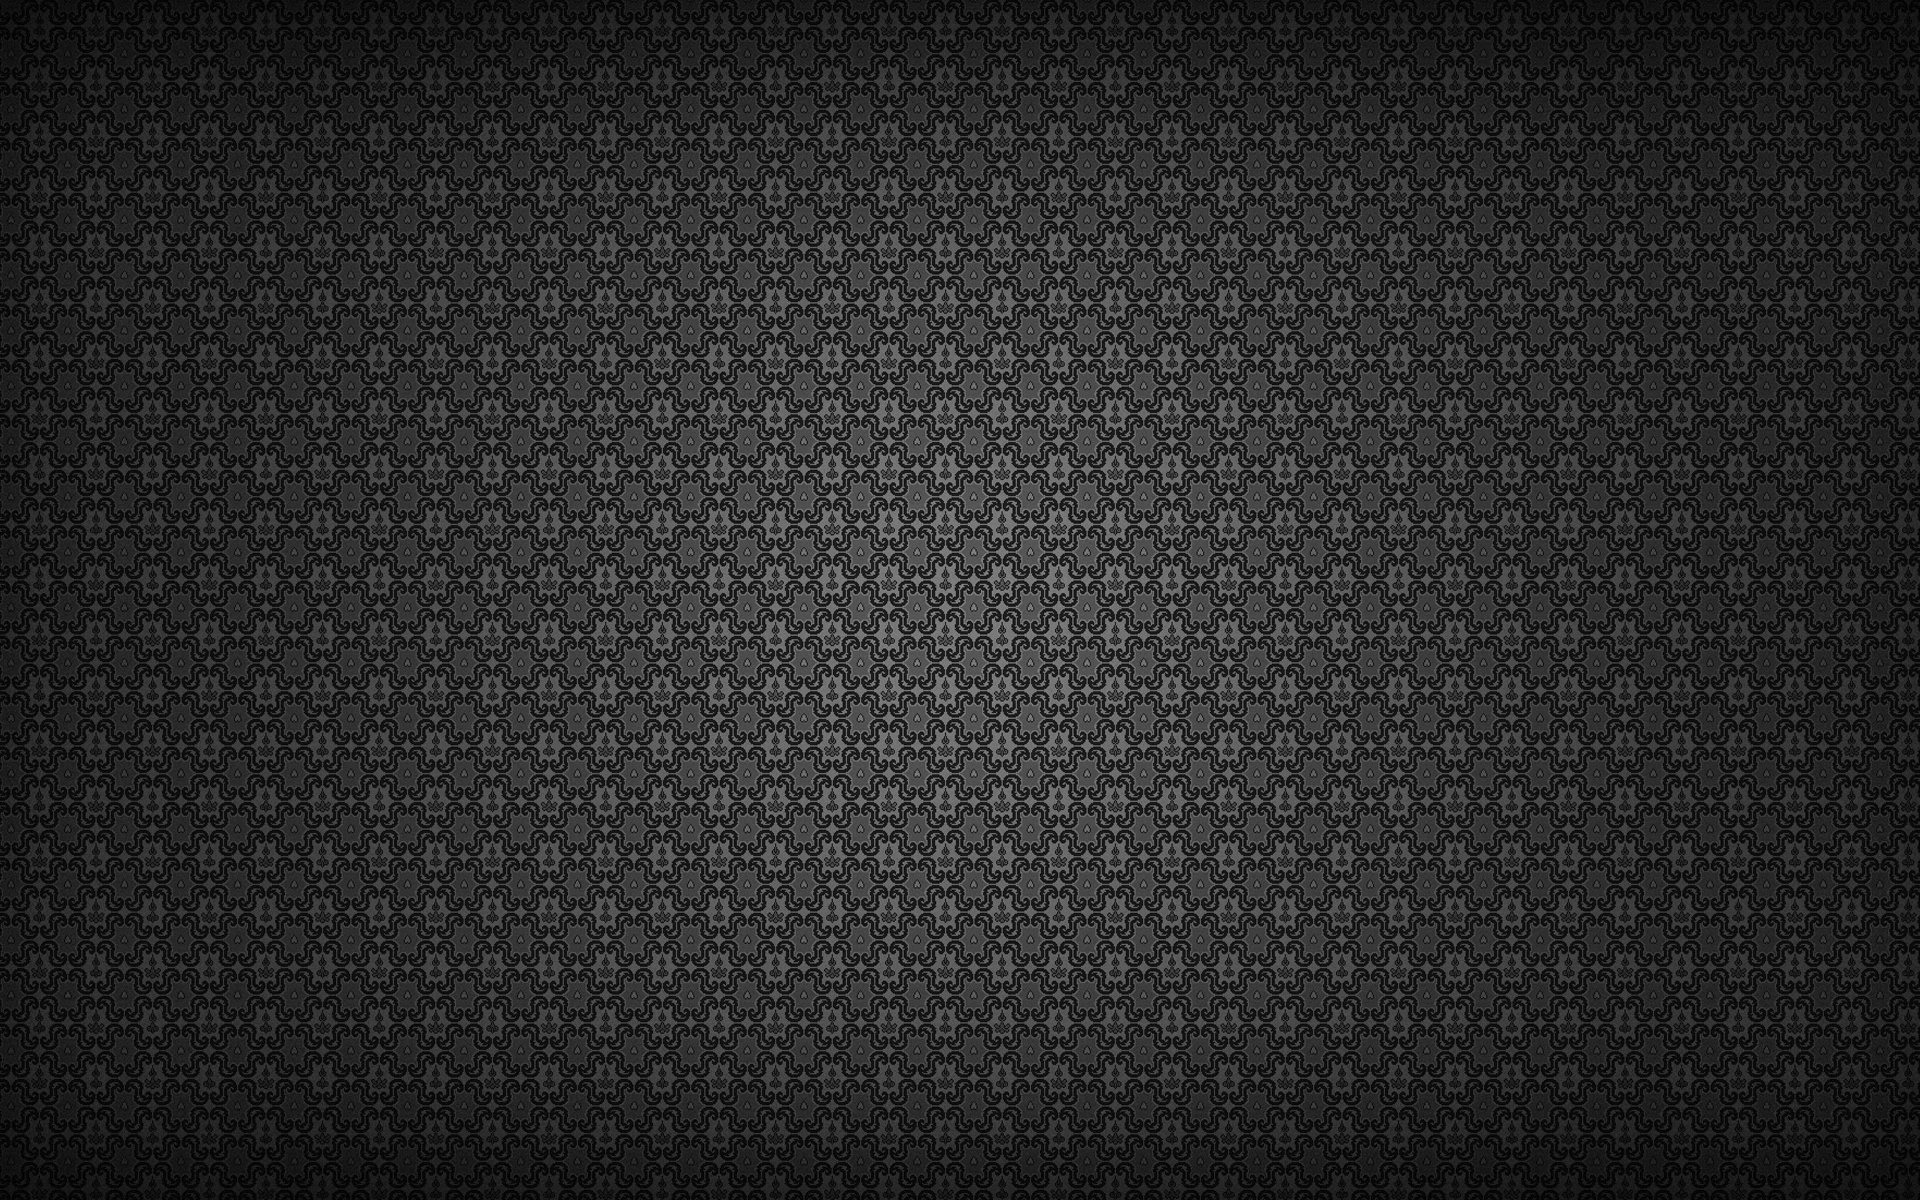 Textured Backgrounds